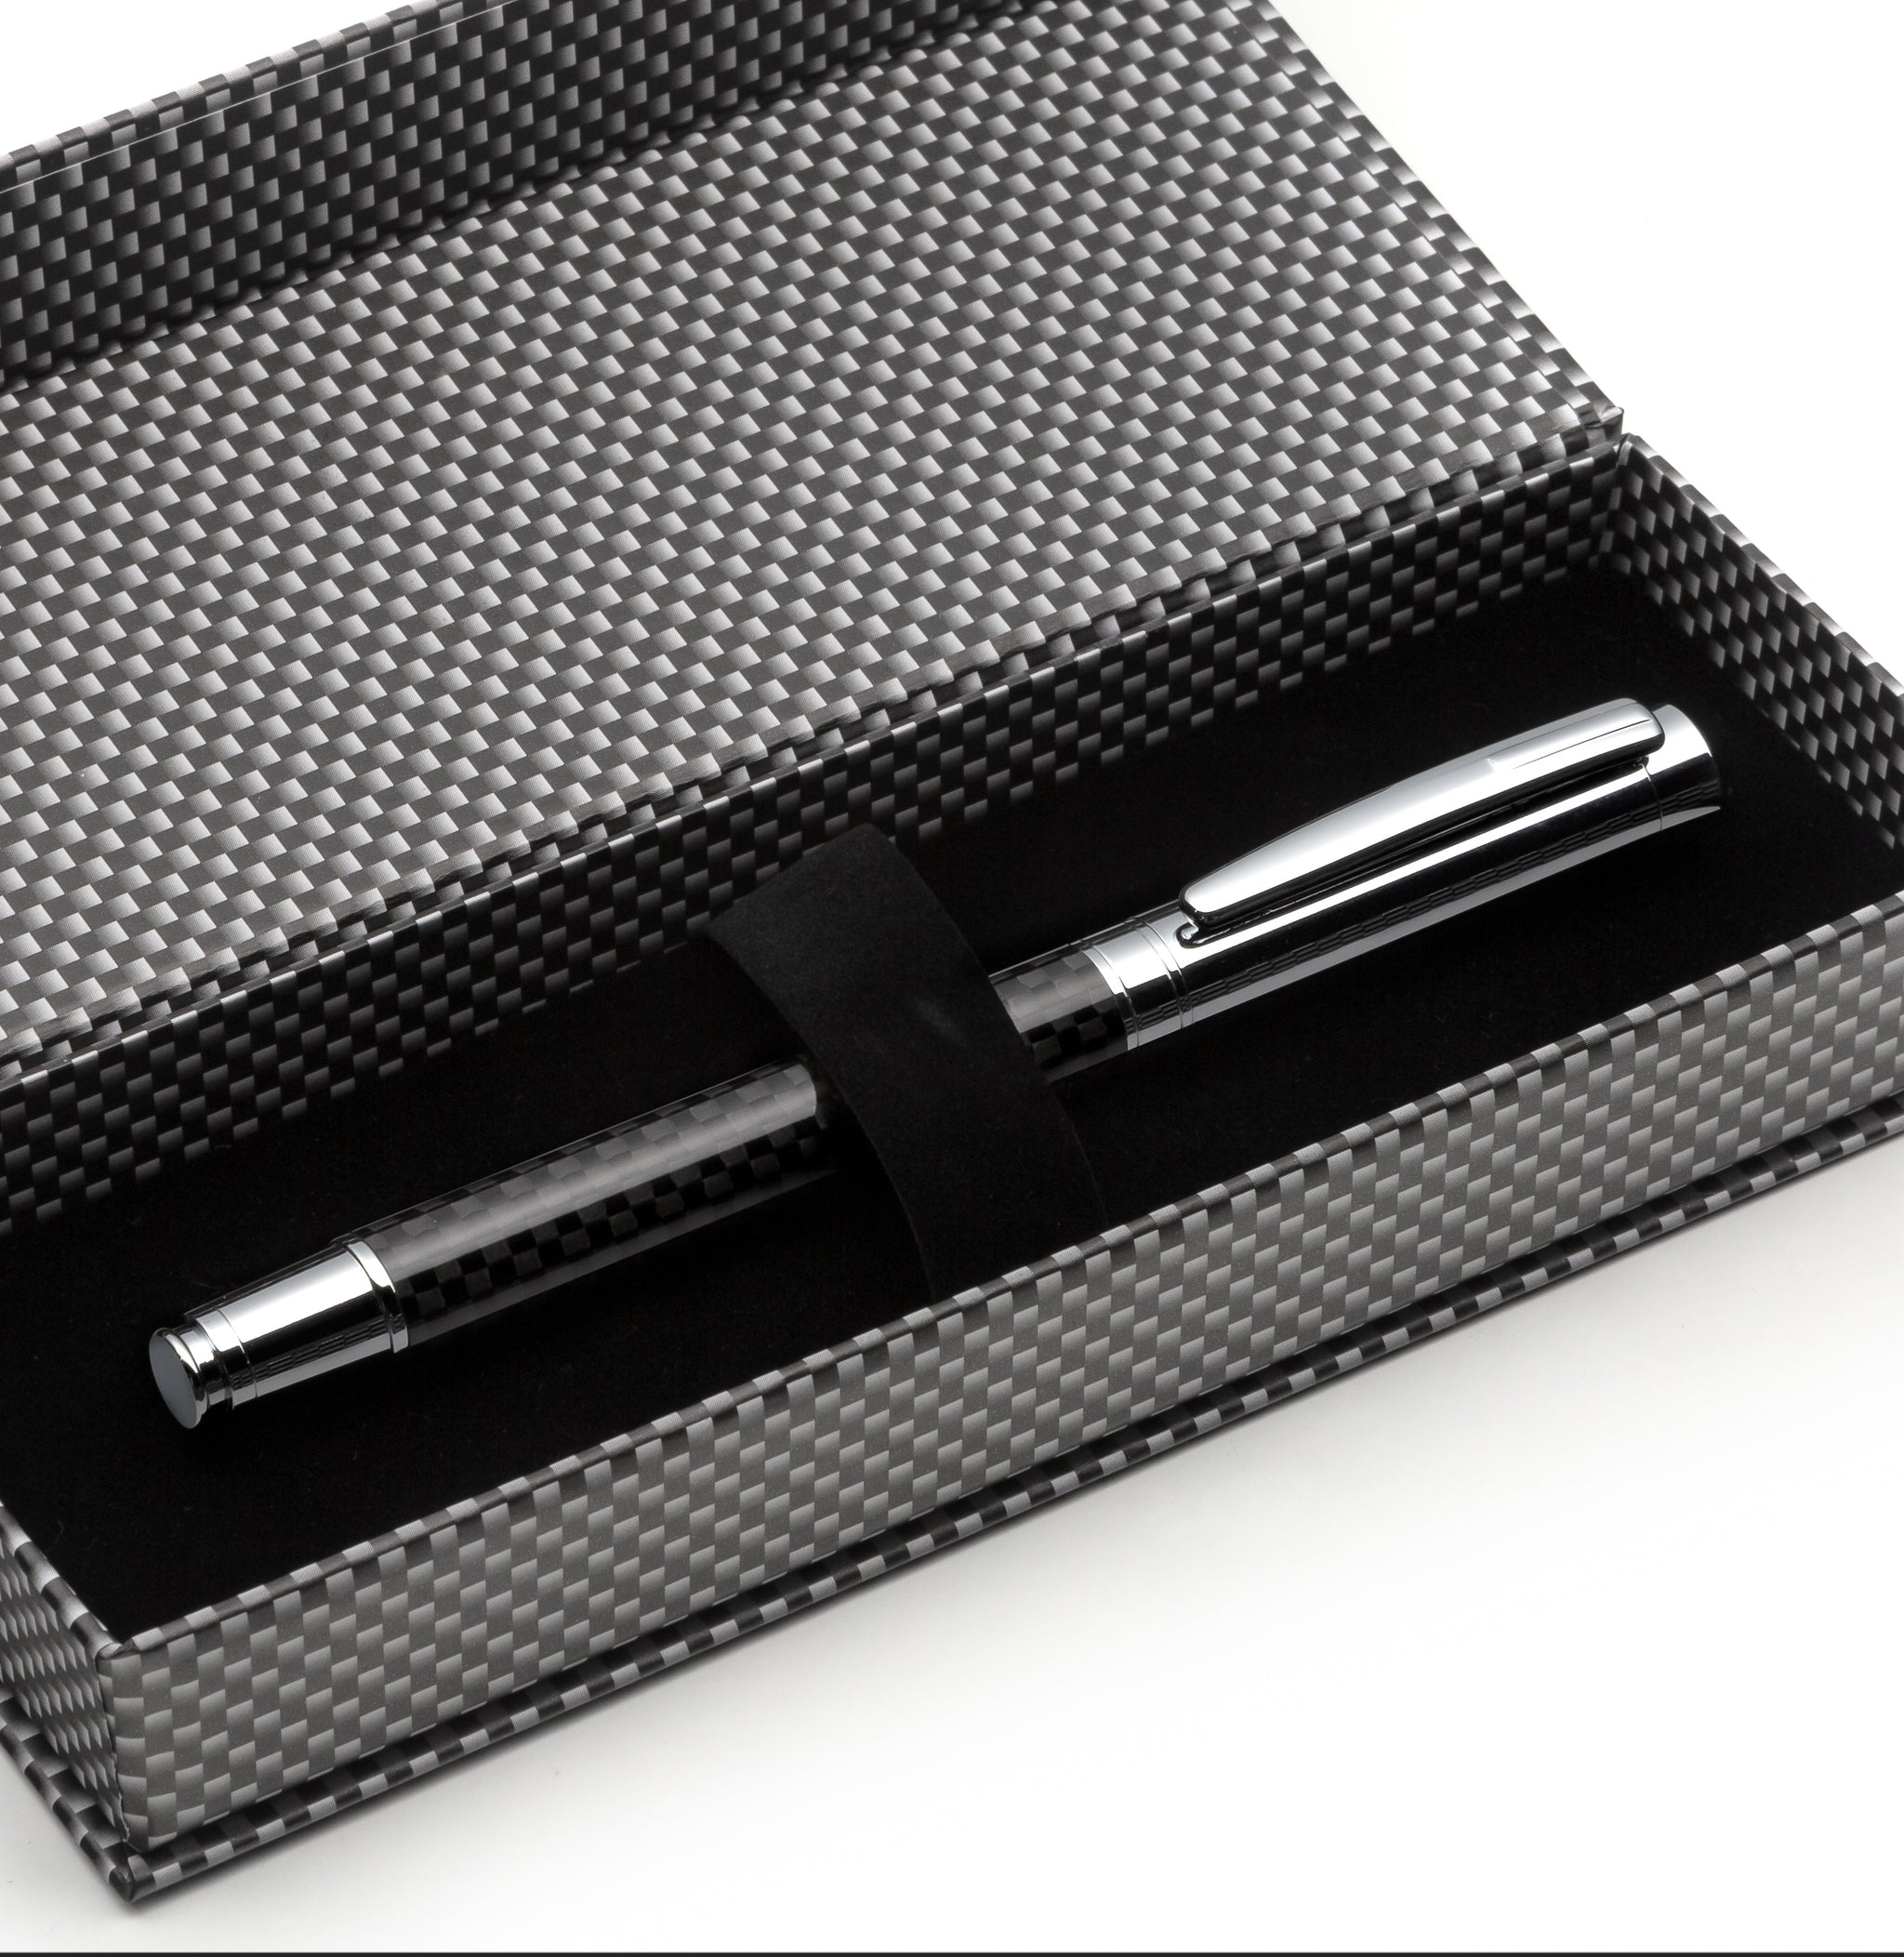 Rollerball Pen price